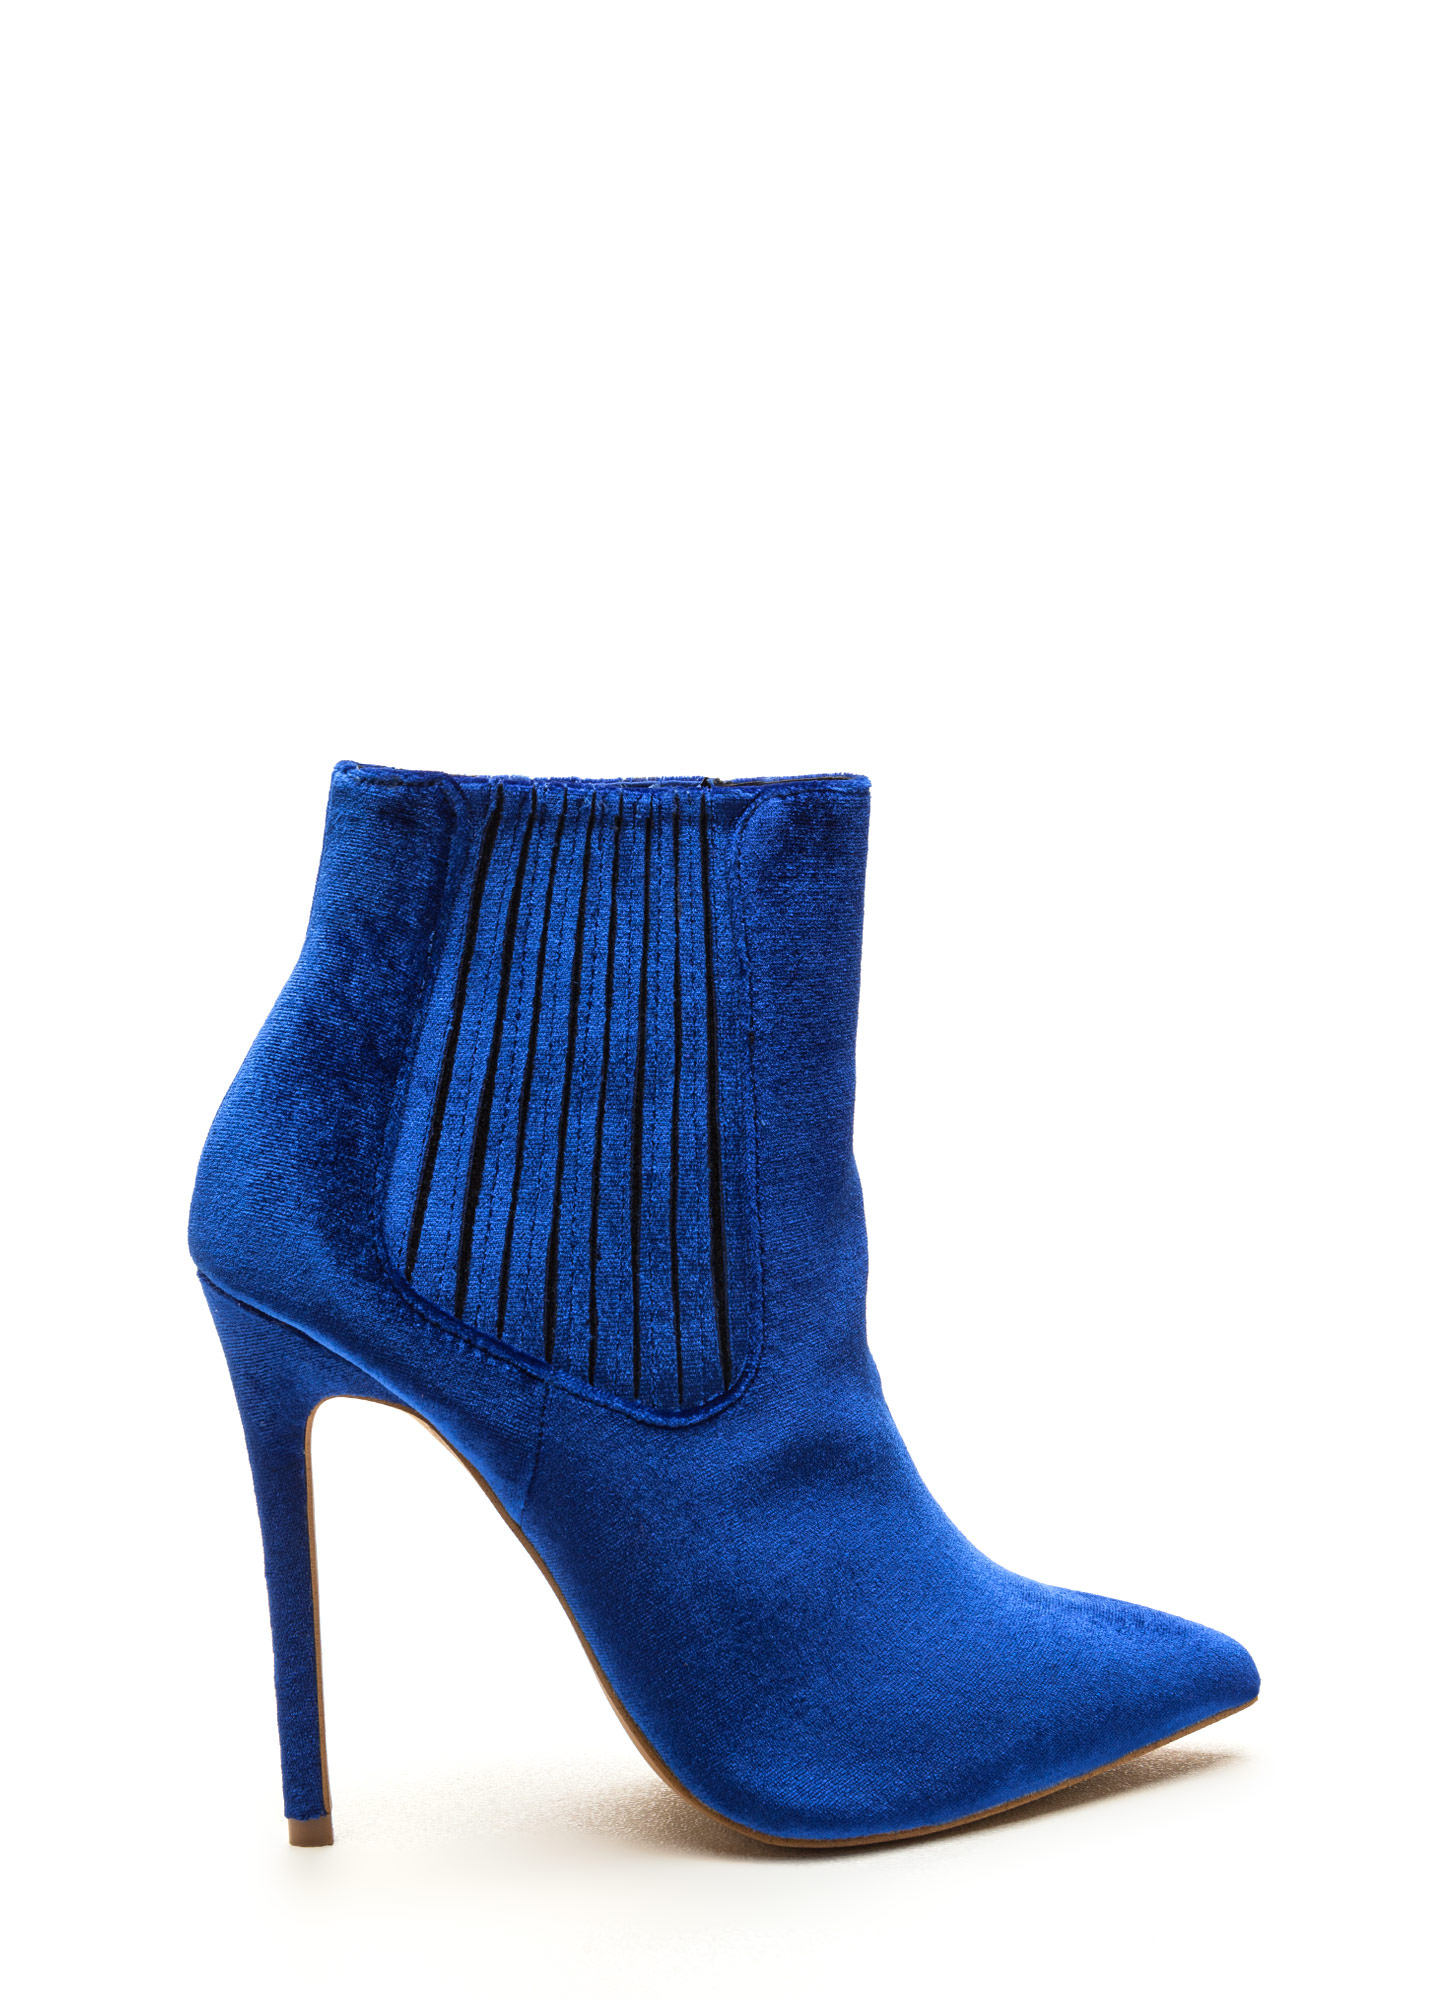 royal blue high heel shoes is heel